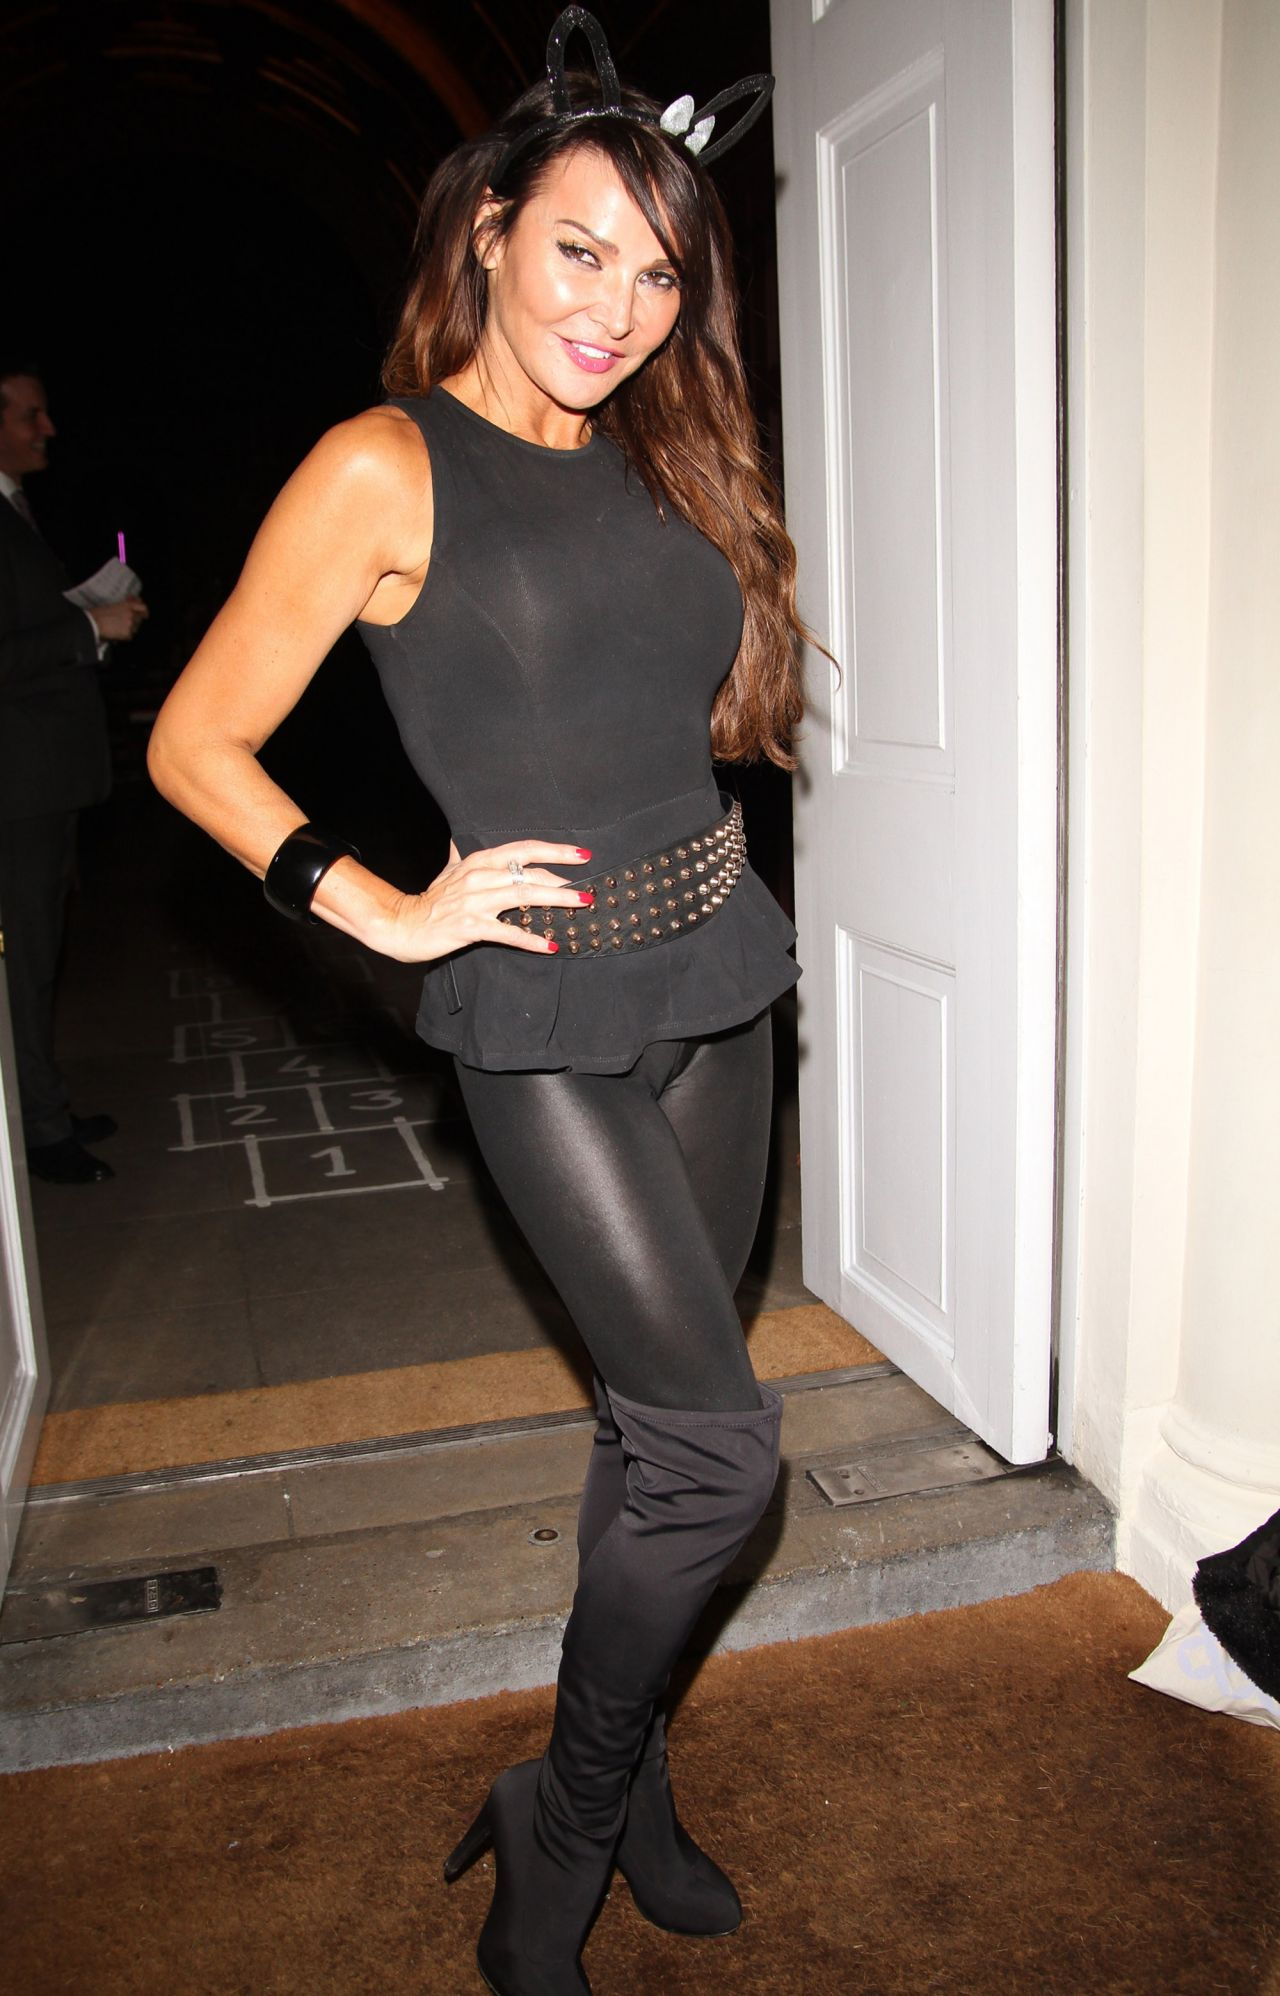 Lizzie Cundy In Tight Spandex Sketch Halloween Party London